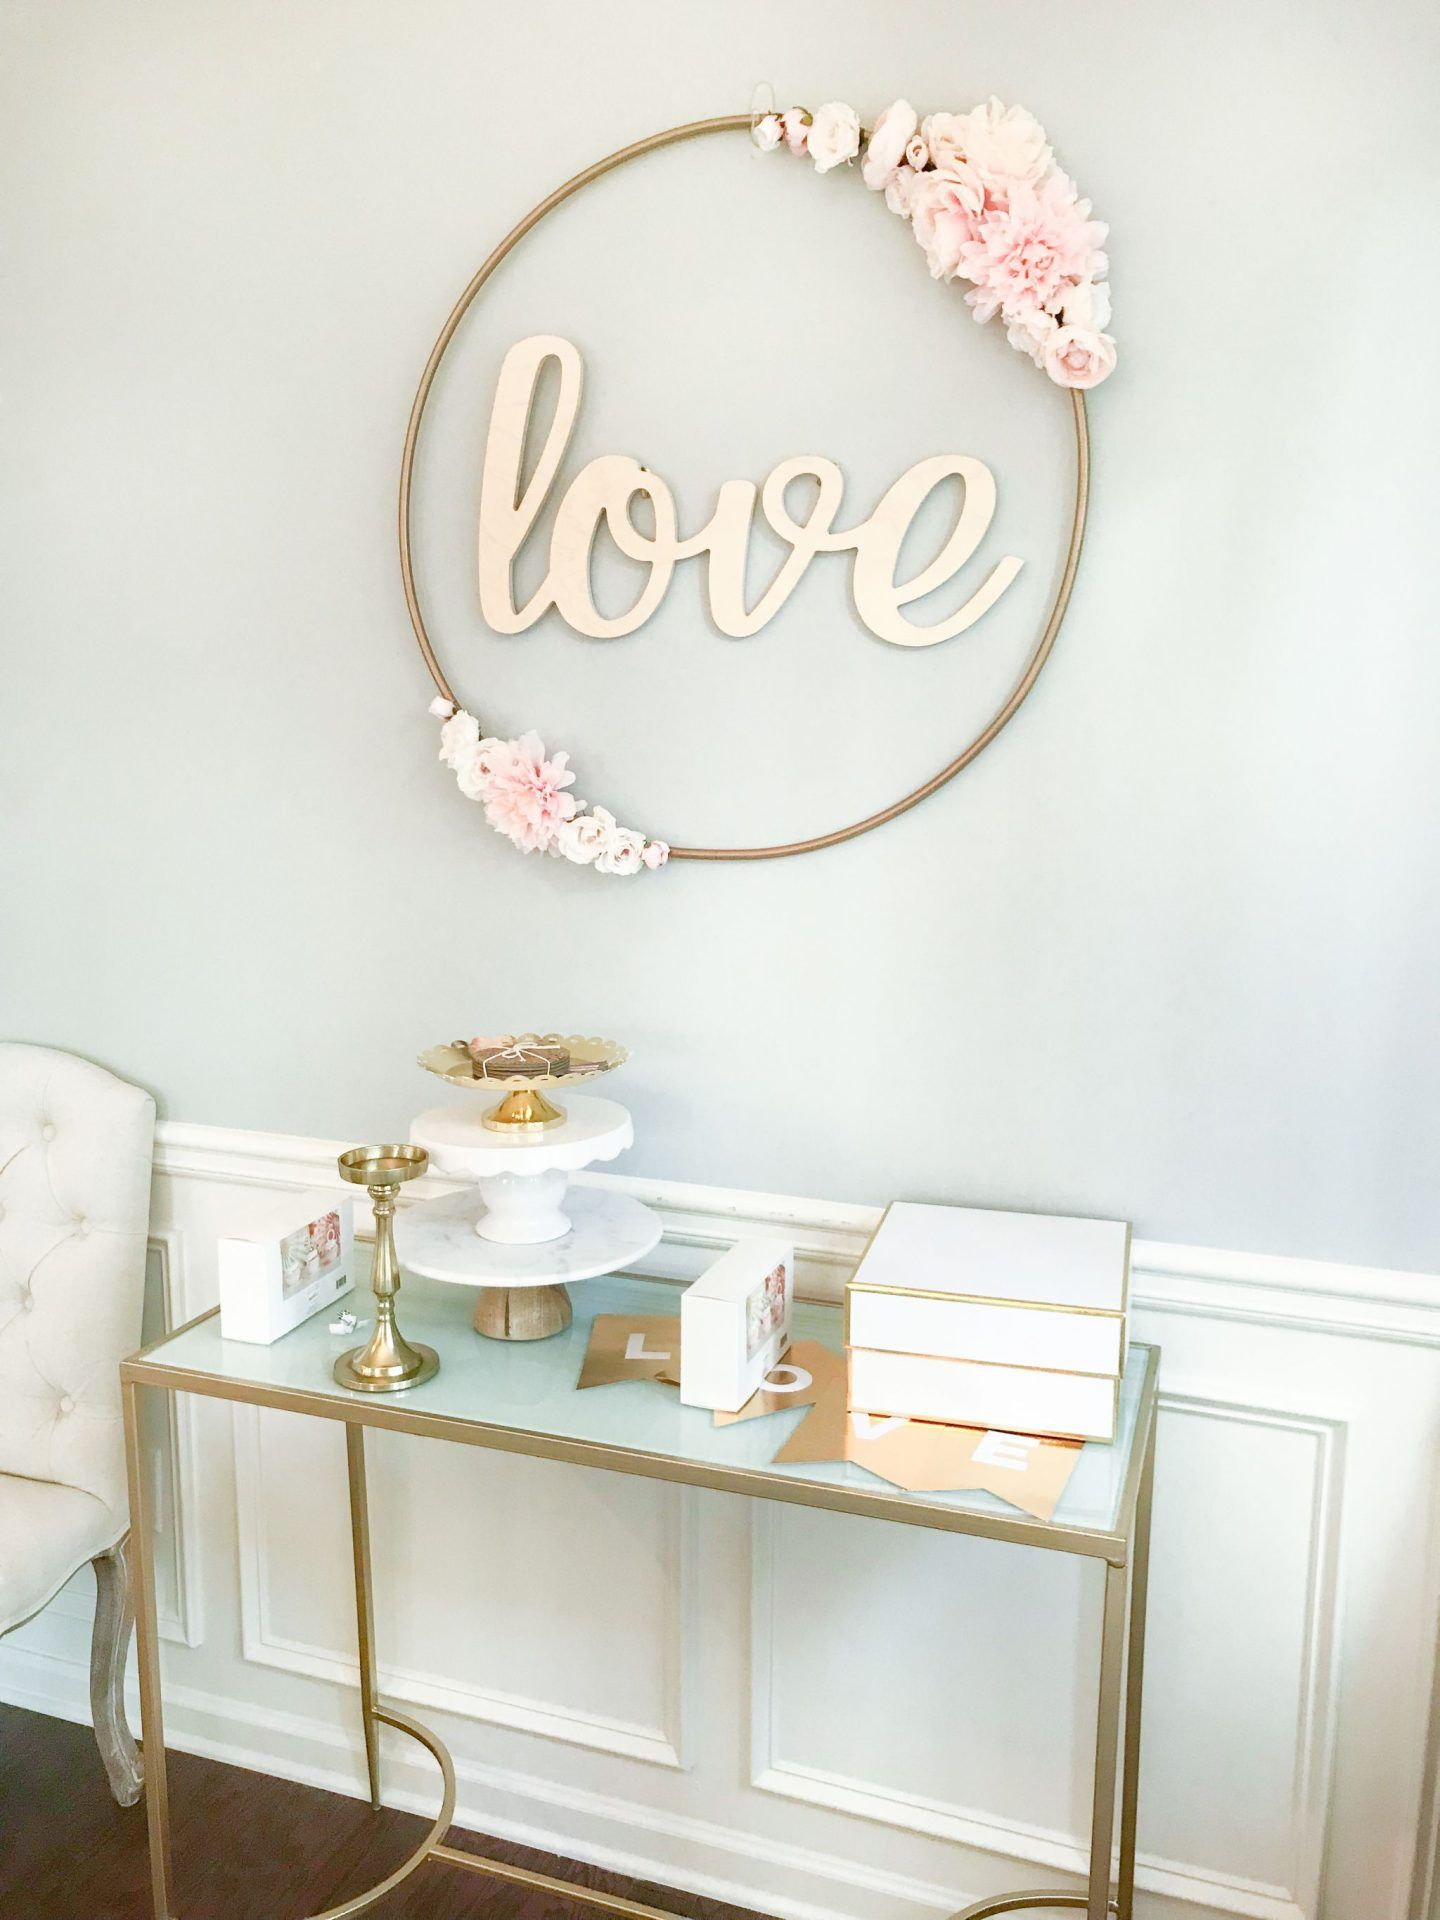 Diy Hula Hoop Love Sign Blush And Gold Bridal Shower Decor Girls